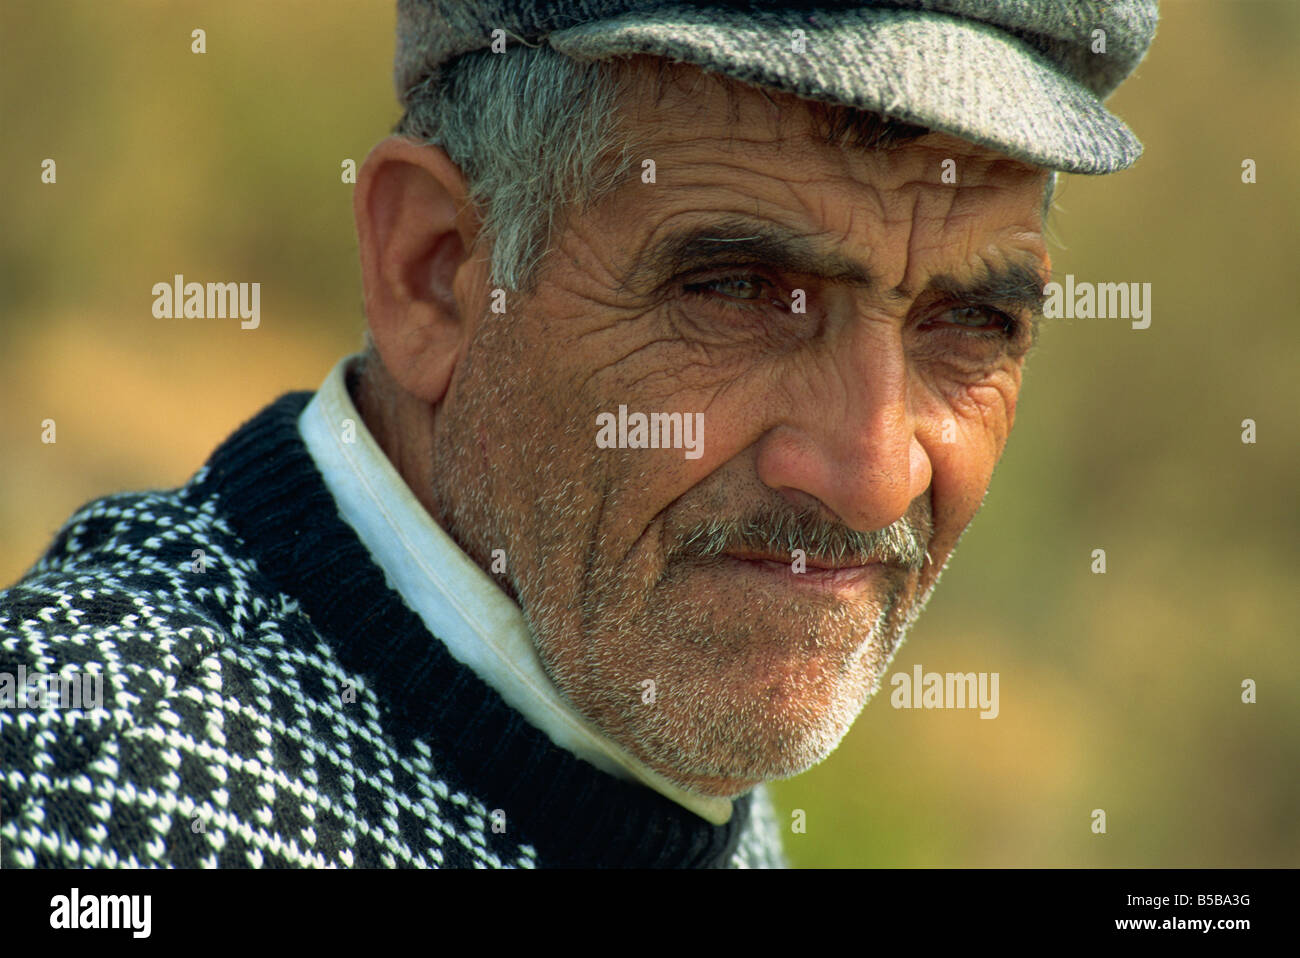 Portrait of an old man with moustache and flat cap who is a phaeton driver in Buyuk Ada on Princes Islands Turkey - Stock Image